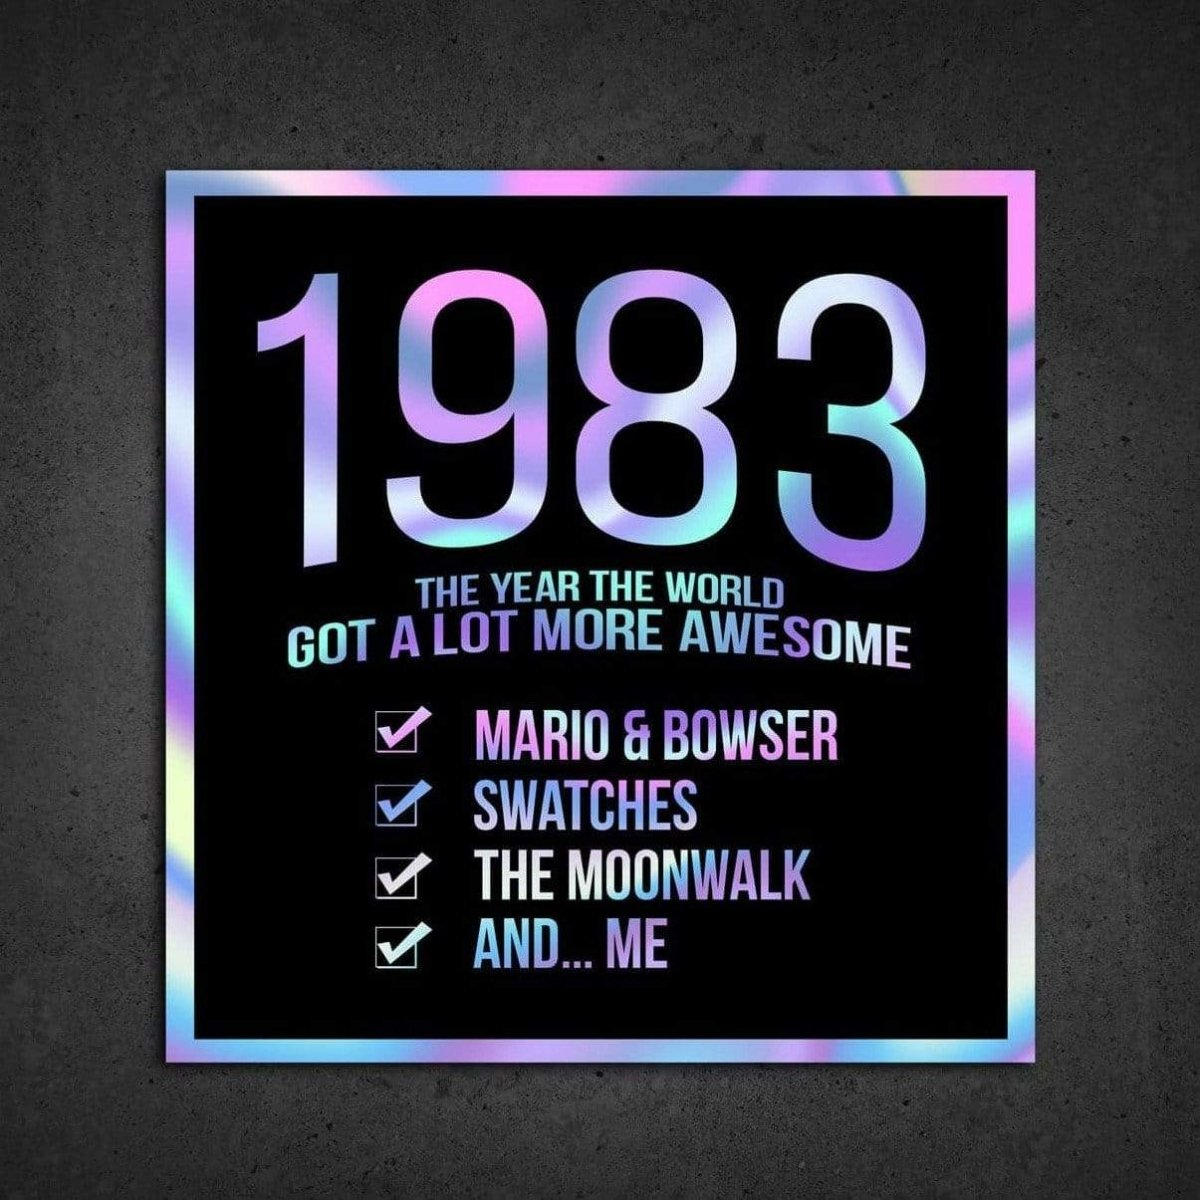 1983! Hologram Birth Year Sticker - Dan Pearce Sticker Shop